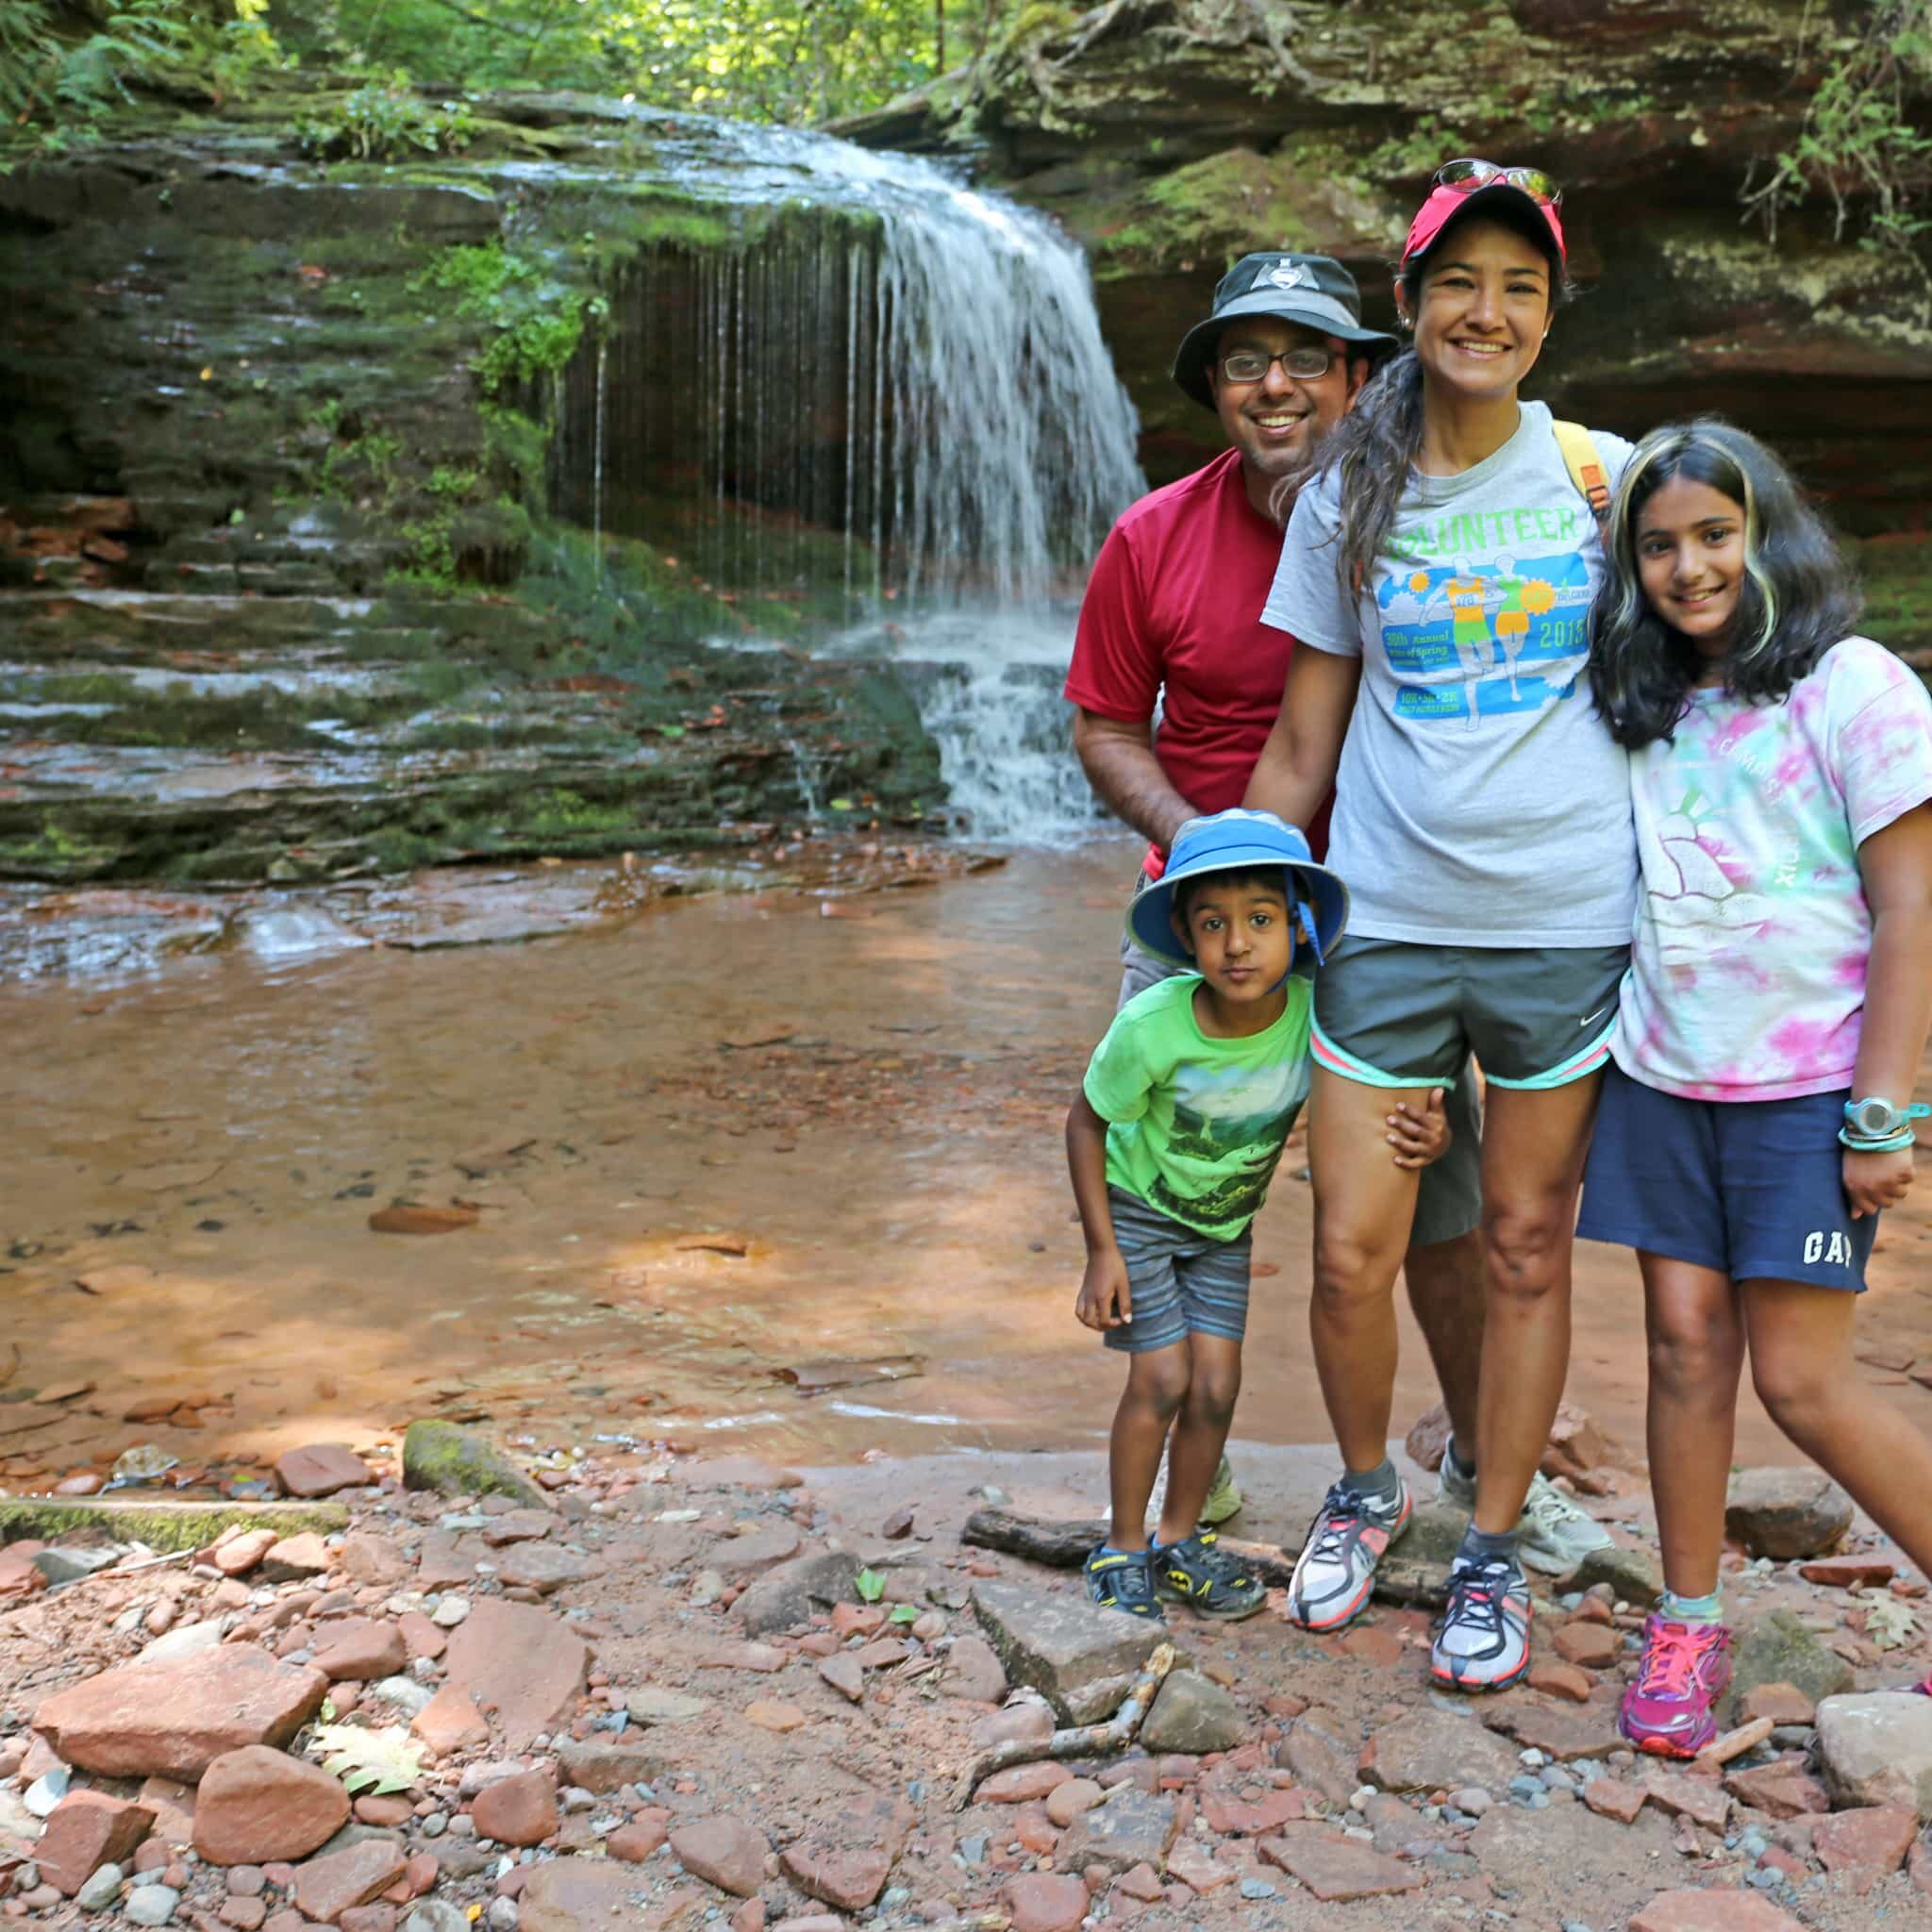 Hiking to Lost Creek Falls will be a highlight for your kids.